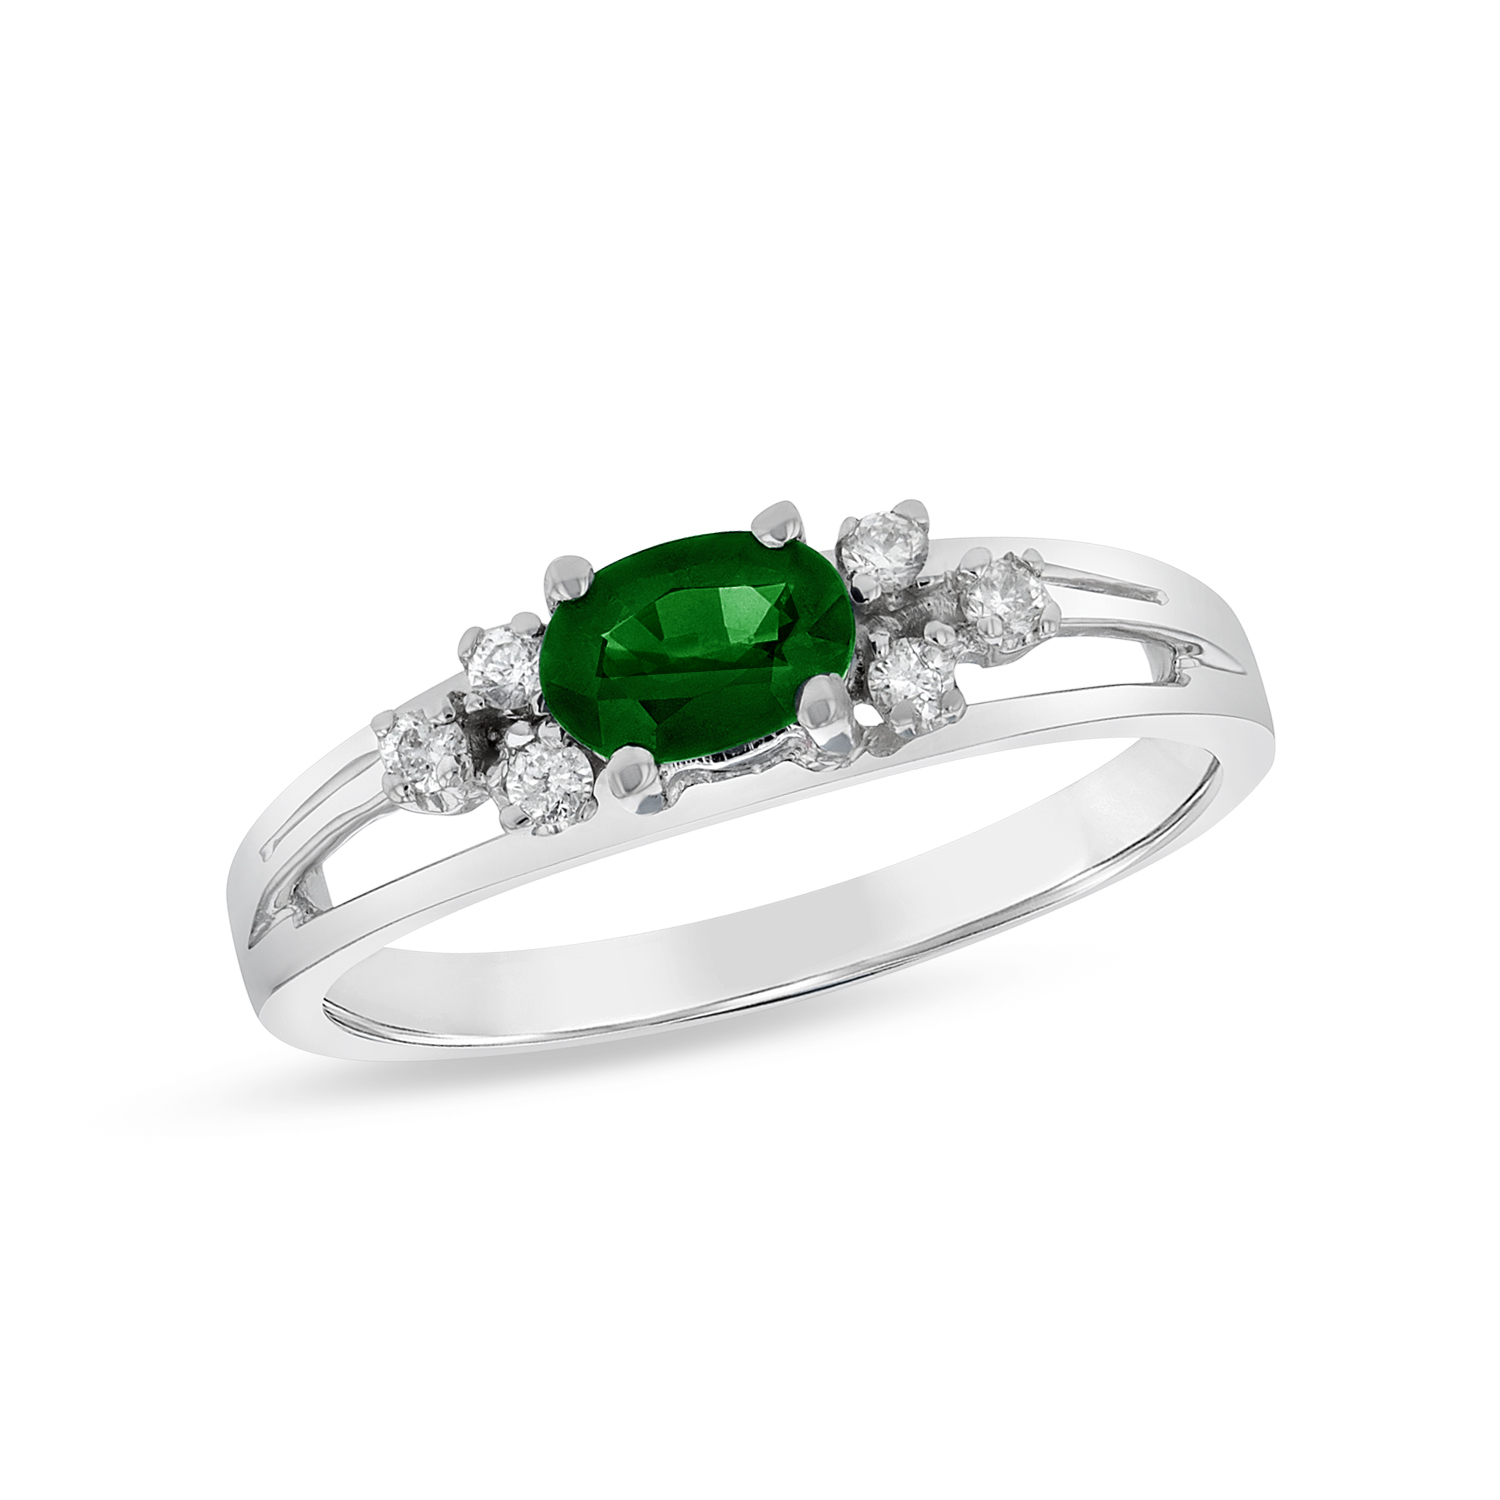 View 0.50ctw Diamond and Emerald fashion Band in 14k White Gold